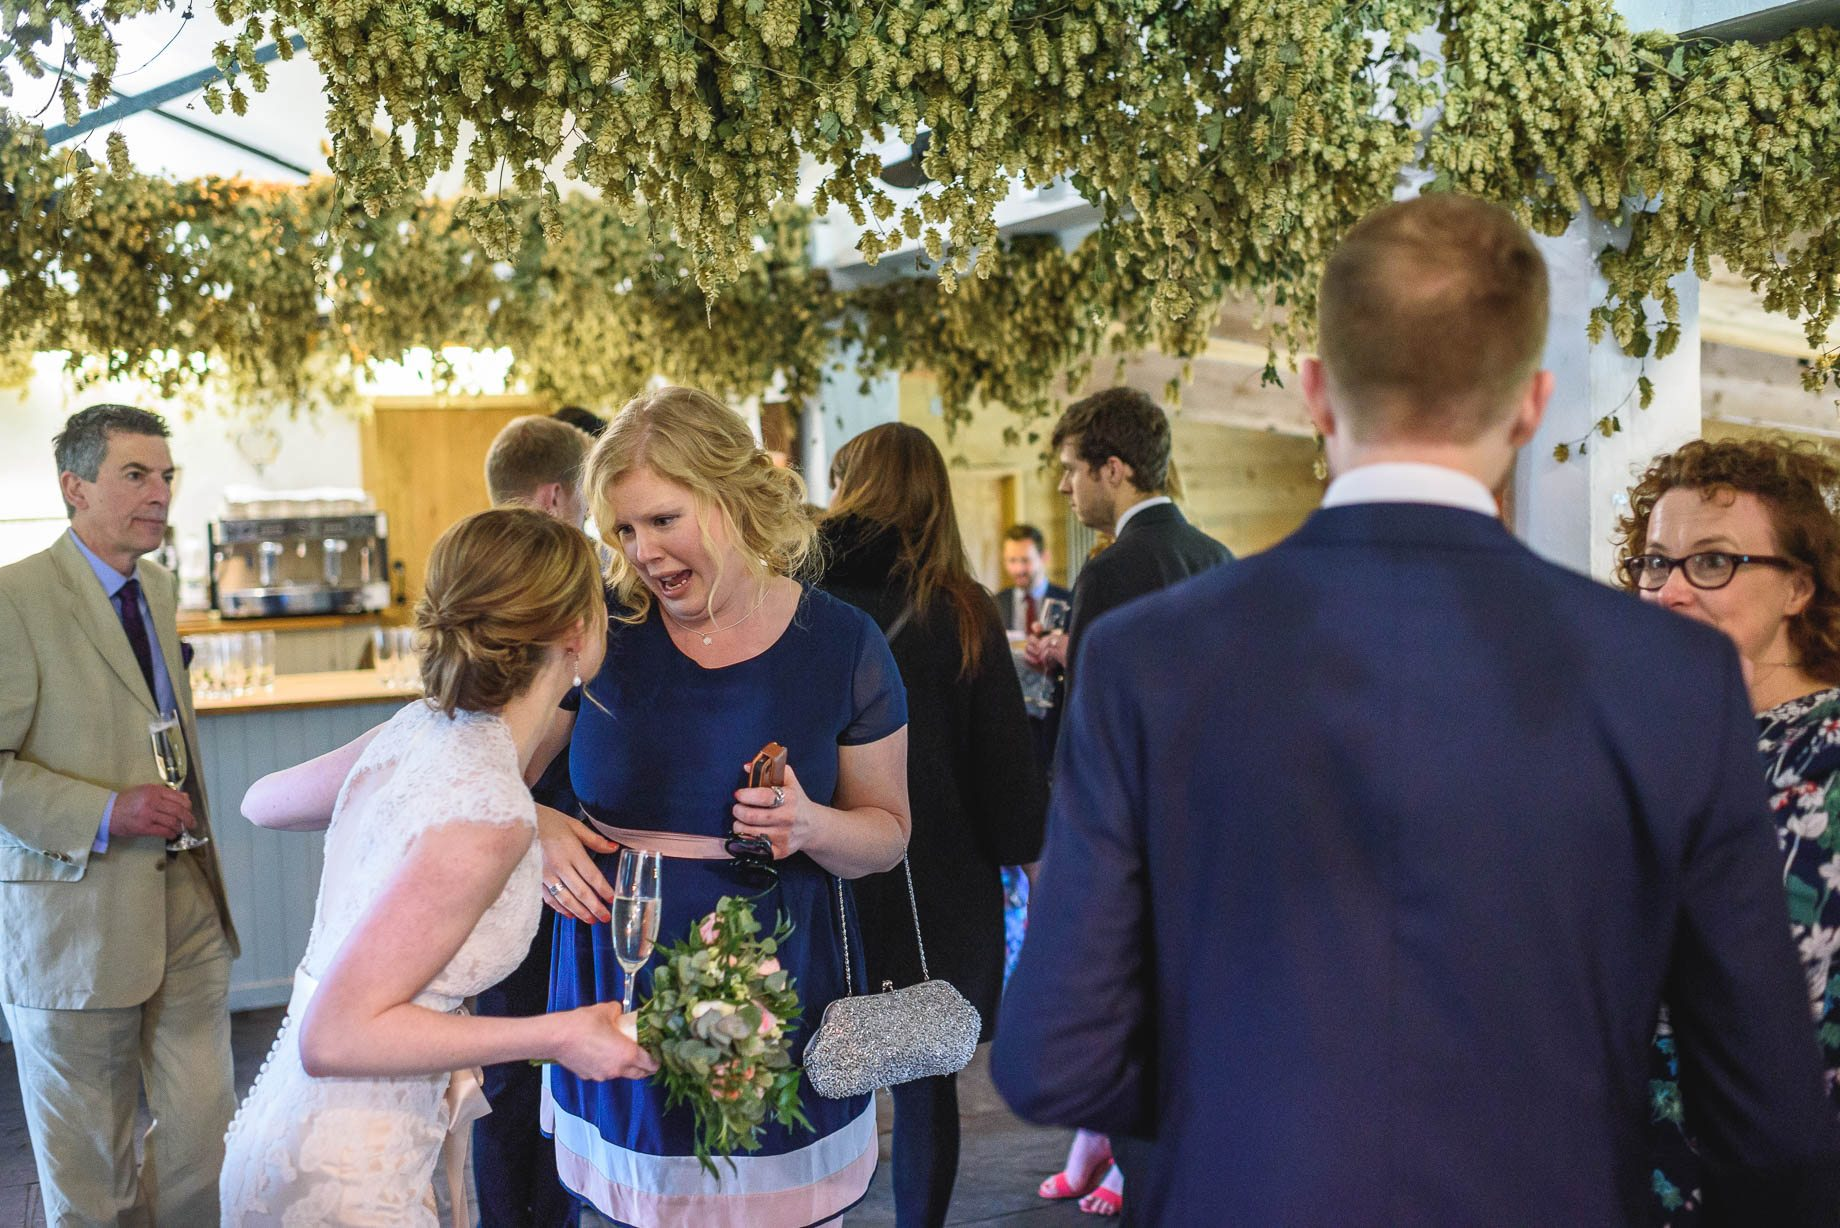 Surrey Wedding Photography by Guy Collier - Becca and James (102 of 145)